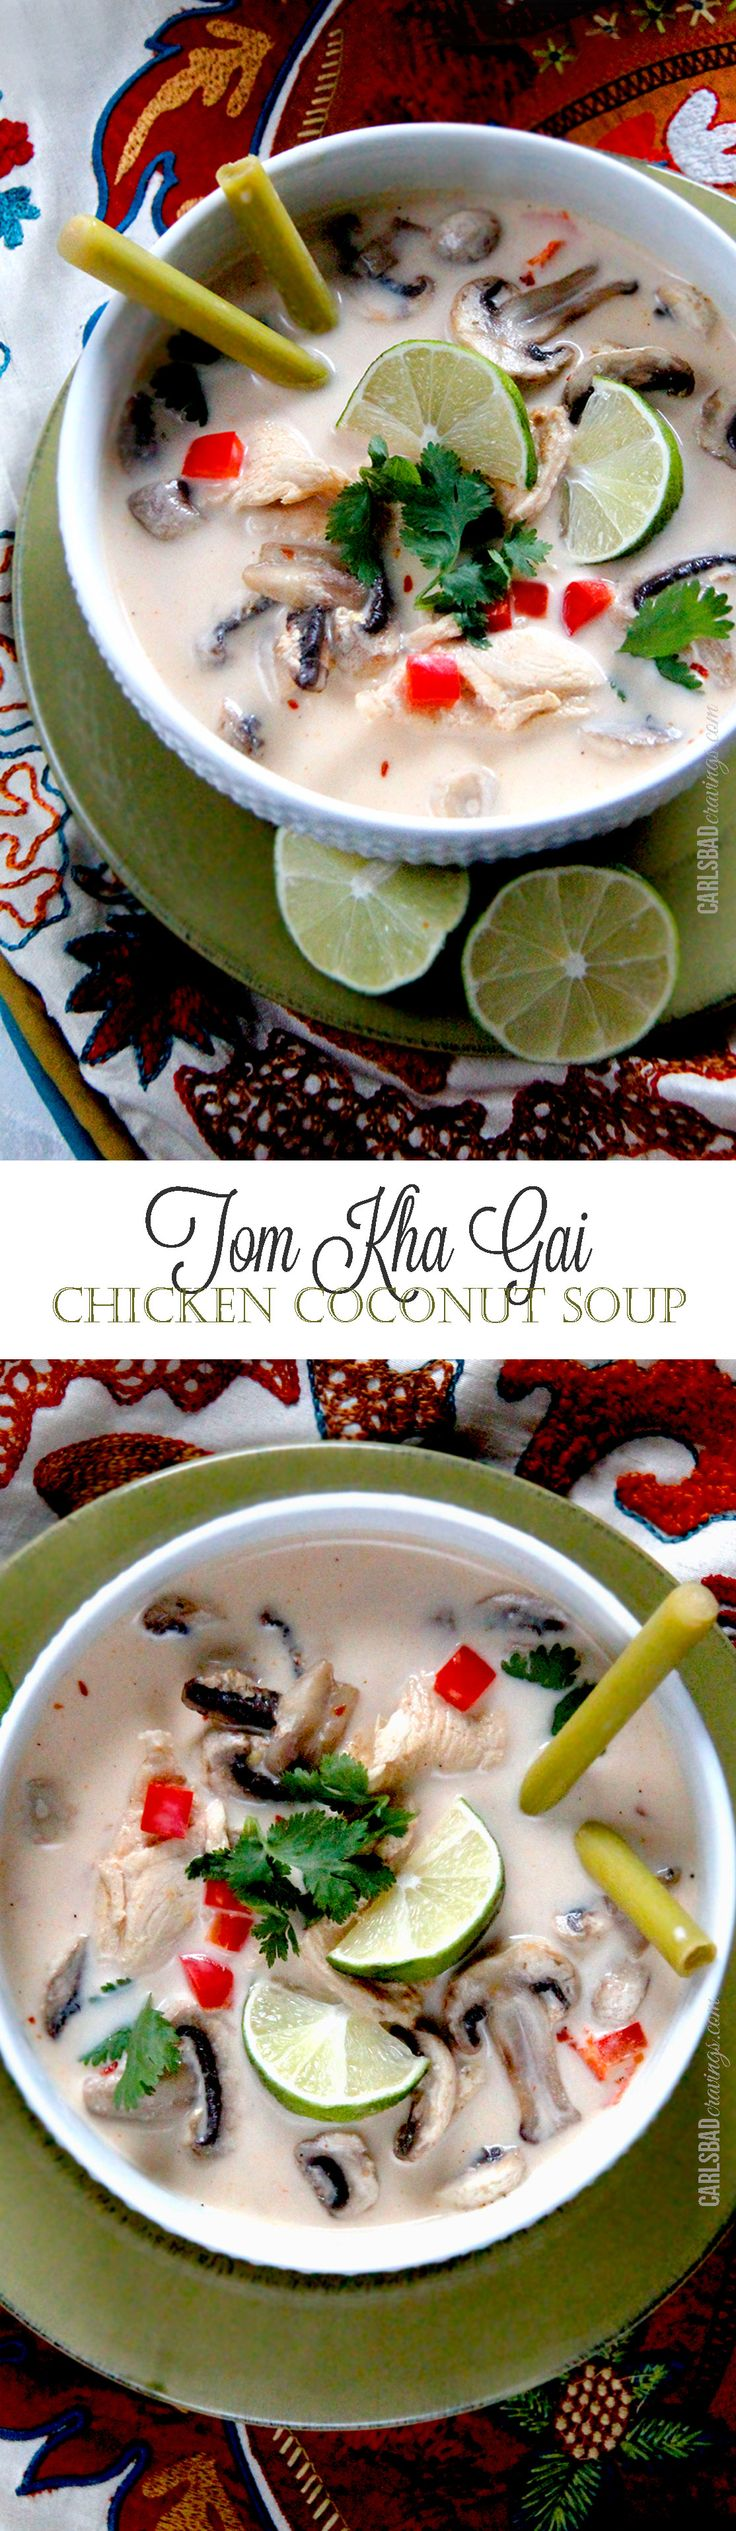 Tom Kha Gai (Chicken Coconut Soup)   every bit as delicious as your favorite Thai restaurant and on your table in less than 30 MINUTES! Warm coconut broth infused with lemongrass, red curry, ginger, and basil, with thinly sliced tender chicken, mushrooms and red bell peppers. Refreshing with layers of tantalizing spices.